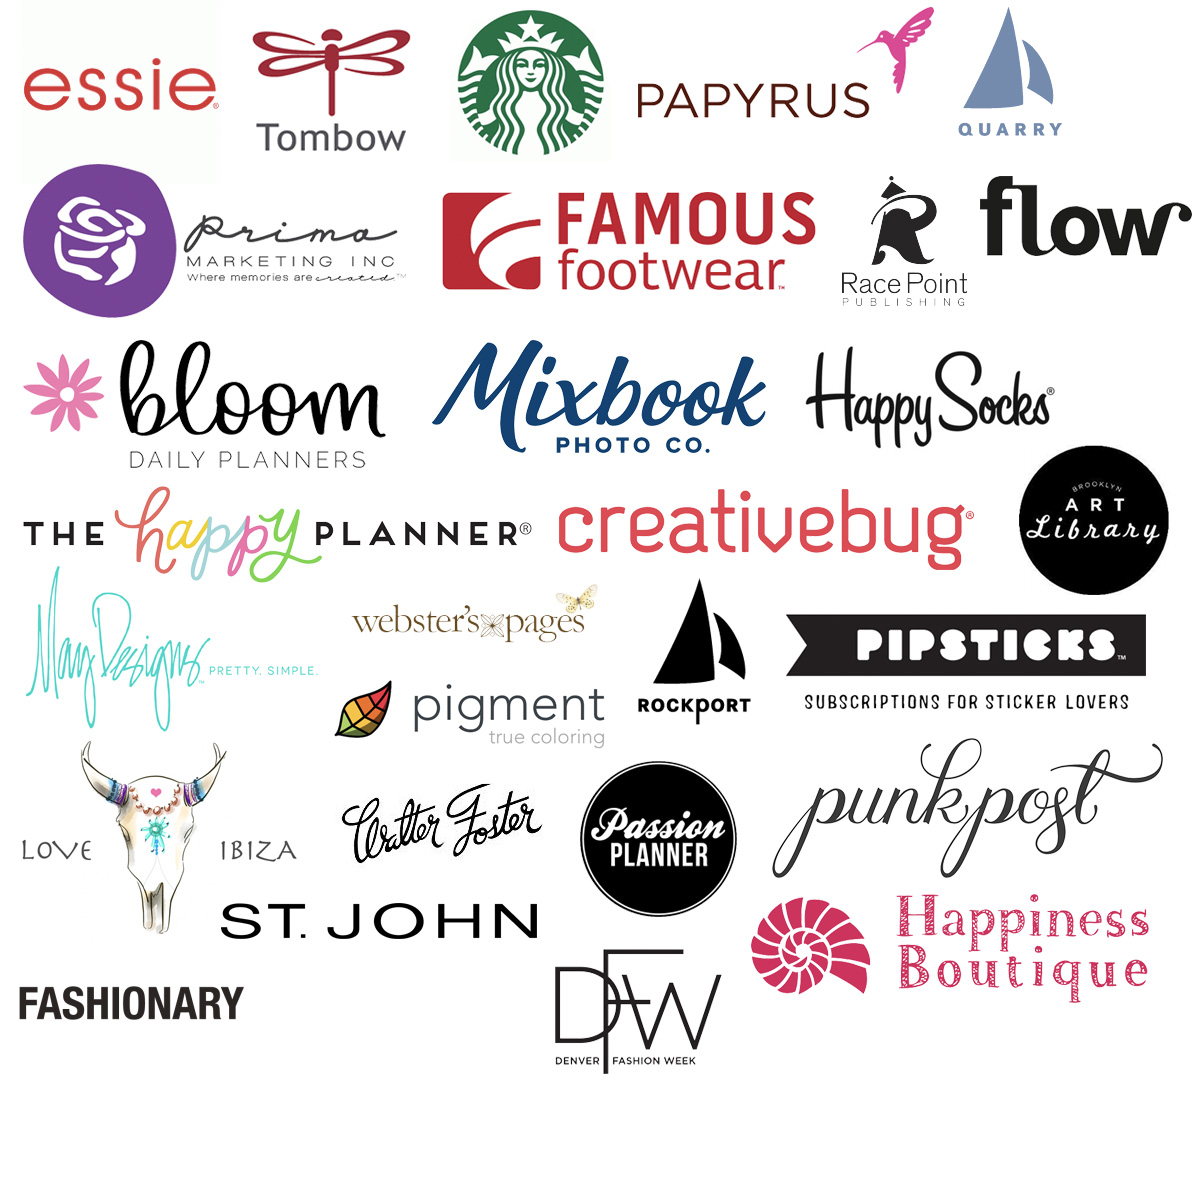 Favorite Clients include: Essie, Starbucks, Tombow, Prima Marketing, Famous Footwear, Happiness Boutique, Love Ibiza, St John Knits, Denver Fashion Week, Quarry Publishing, Rockport Publishing, Papyrus, Flow, RacePoint Publishing, The Happy Planner, Bloom Daily Planners, Mixbook, Happy Socks, CreativeBug, Brooklyn Art Library, May Designs, Pigment Coloring App, Pipsticks, Webster's Pages, Punkpost, Passion Planner and more!